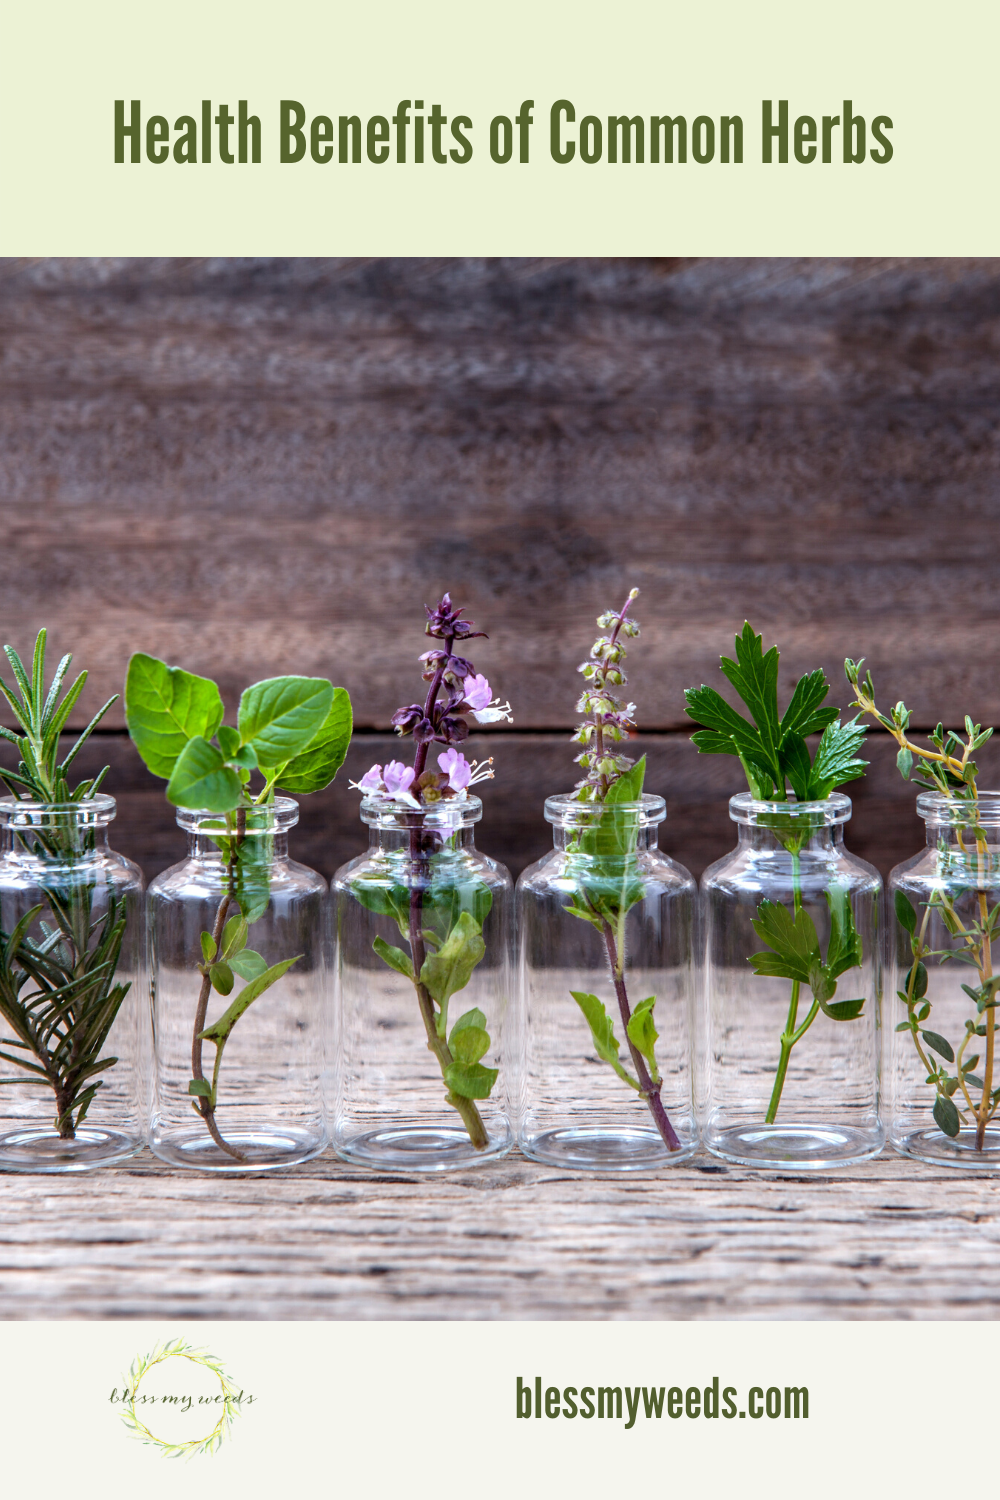 While most use herbs in cooking and spices, it doesn't hurt to know of the health benefits as well. The Chinese have used herbal medicine for centuries and are convinced of their healing properties. Read on to learn more about what these common herbs can do. #3commonherbs #healthbenefitsofherbs